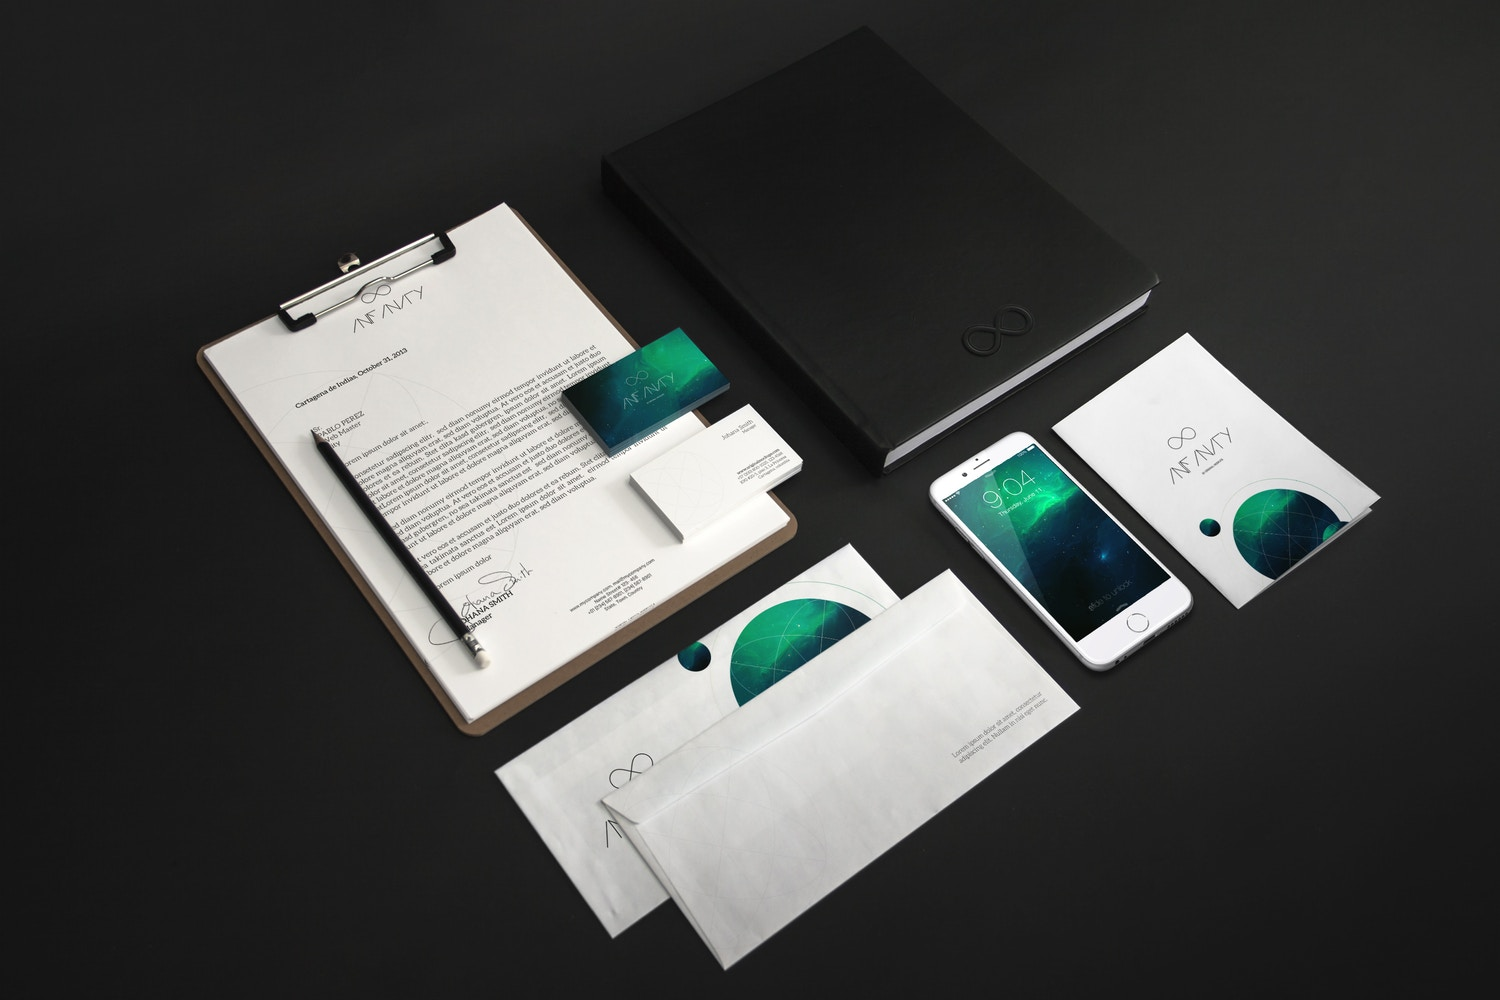 Stationery Mockup 6 by Original Mockups on Original Mockups